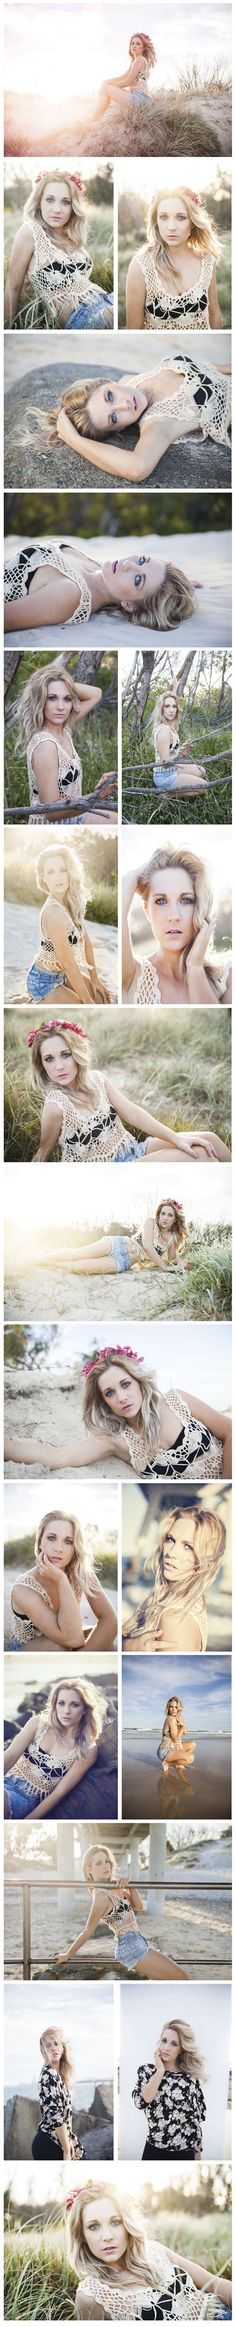 Brisbane Portrait, Fashion and Wedding Photographer - Jennifer Maxsted Photography - Bohemian (Boho) Photoshoot